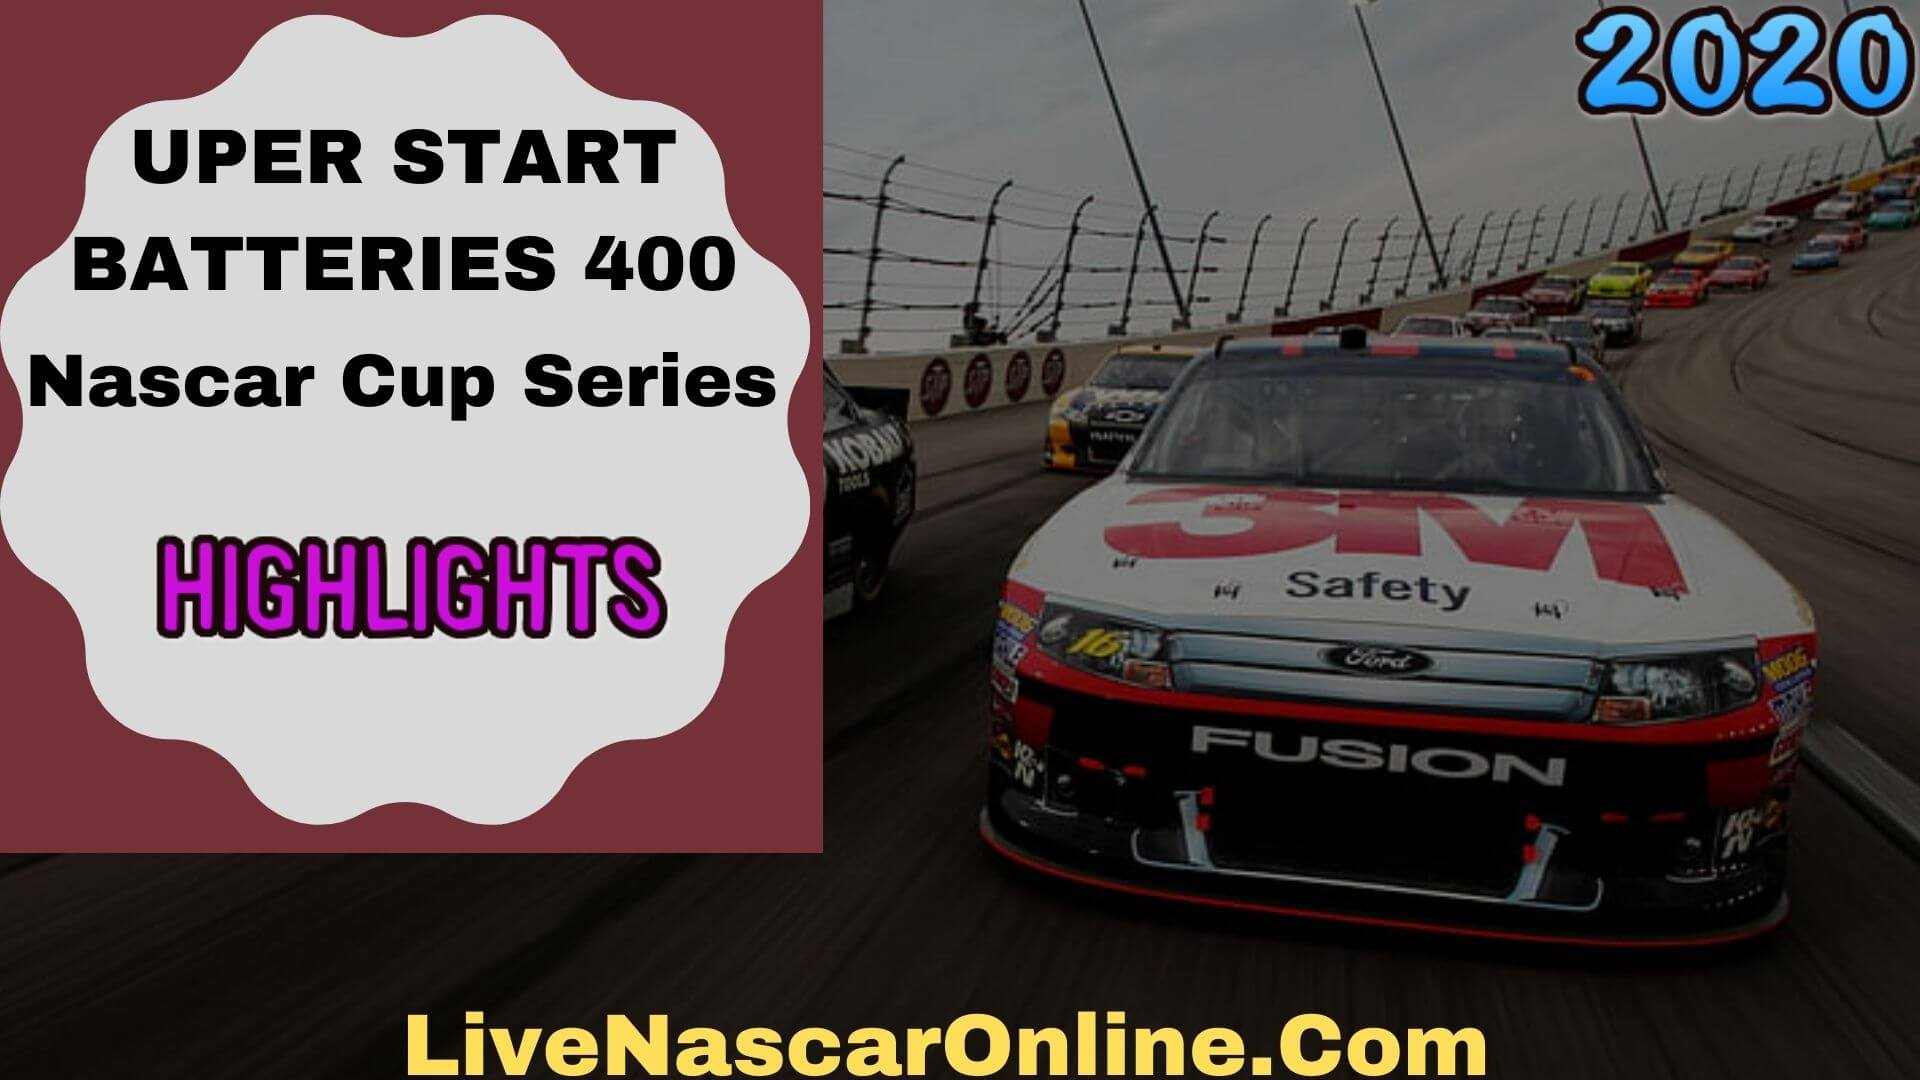 SUPER START BATTERIES 400 Cup Series Highlights 2020